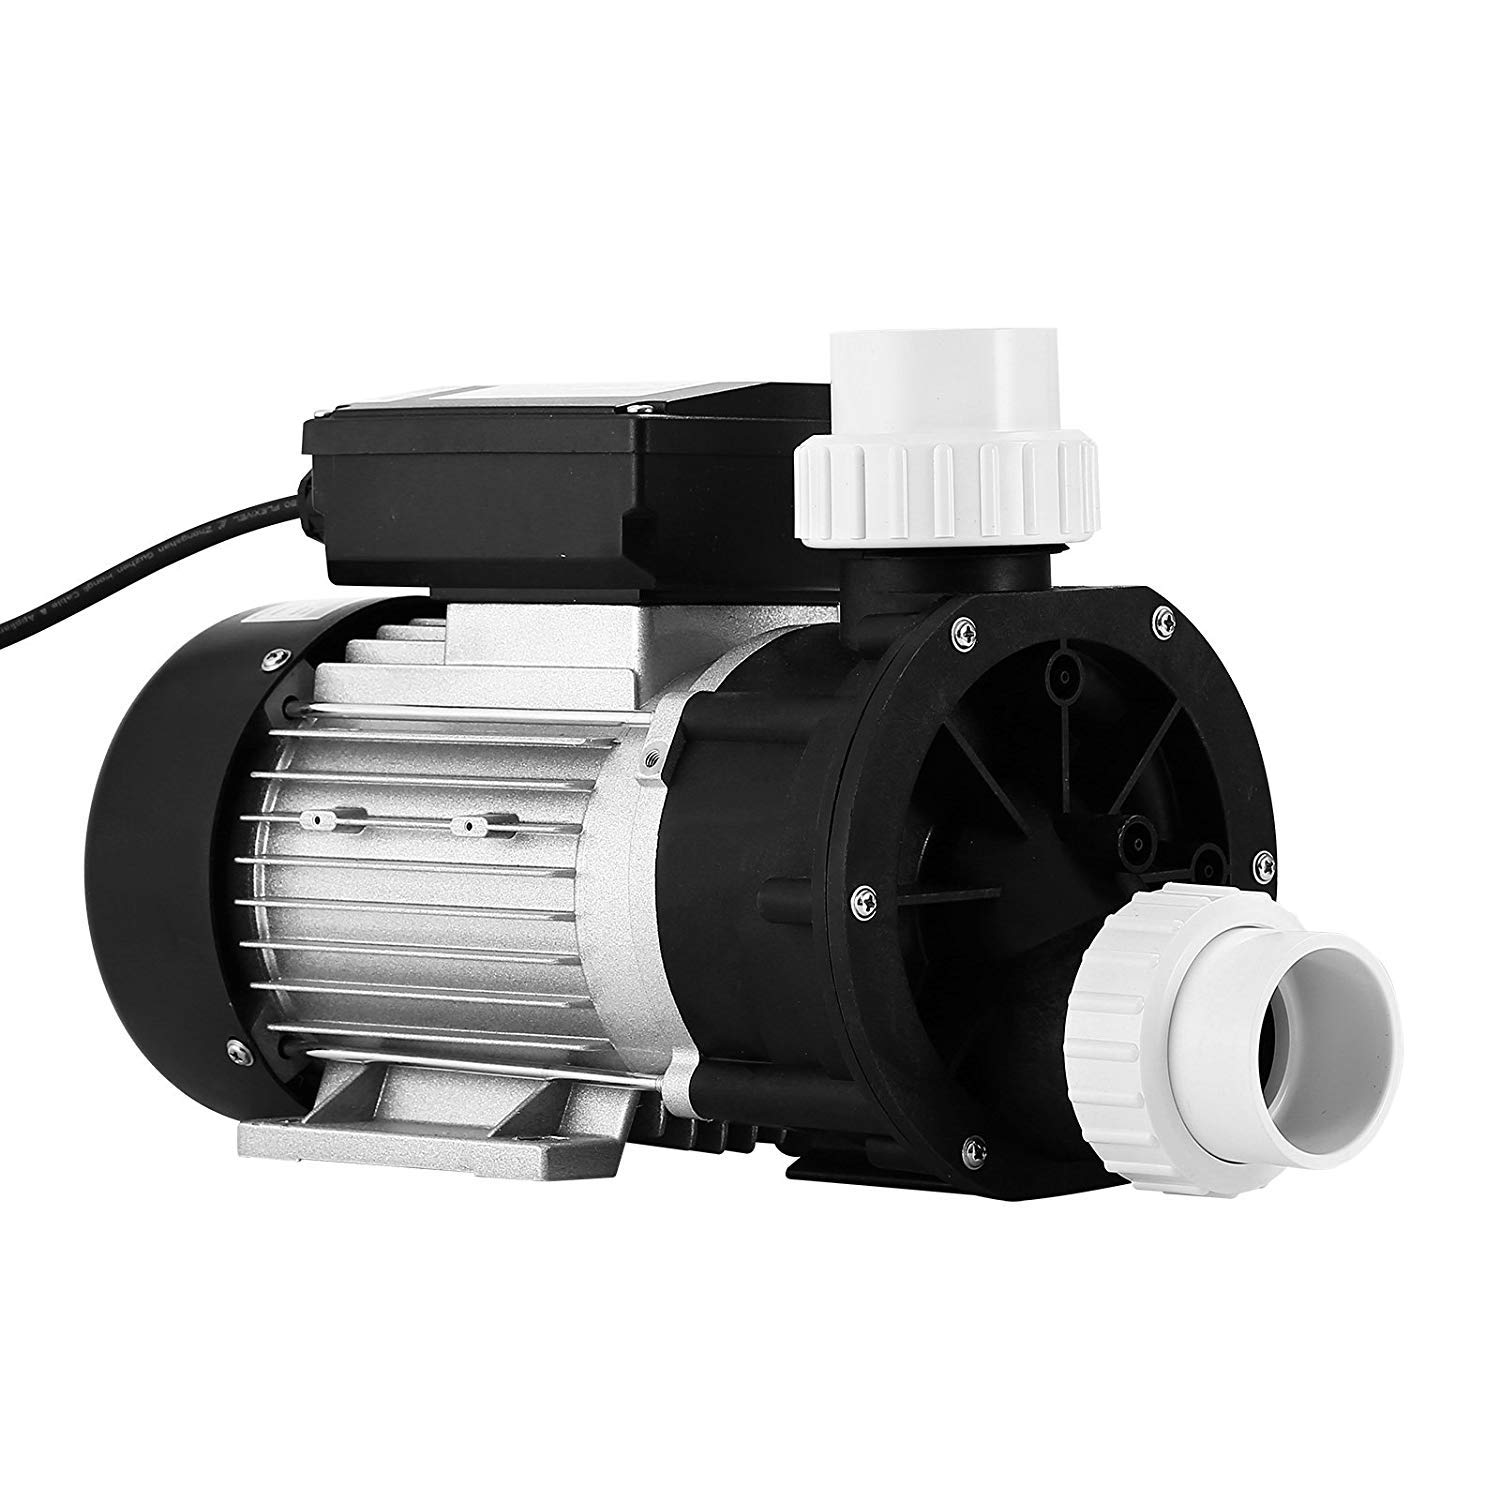 Amazon.com : Happybuy SPA 0.75HP 110V Hot Tub Circulation Pool Pump  Whirlpool Bath : Garden & Outdoor